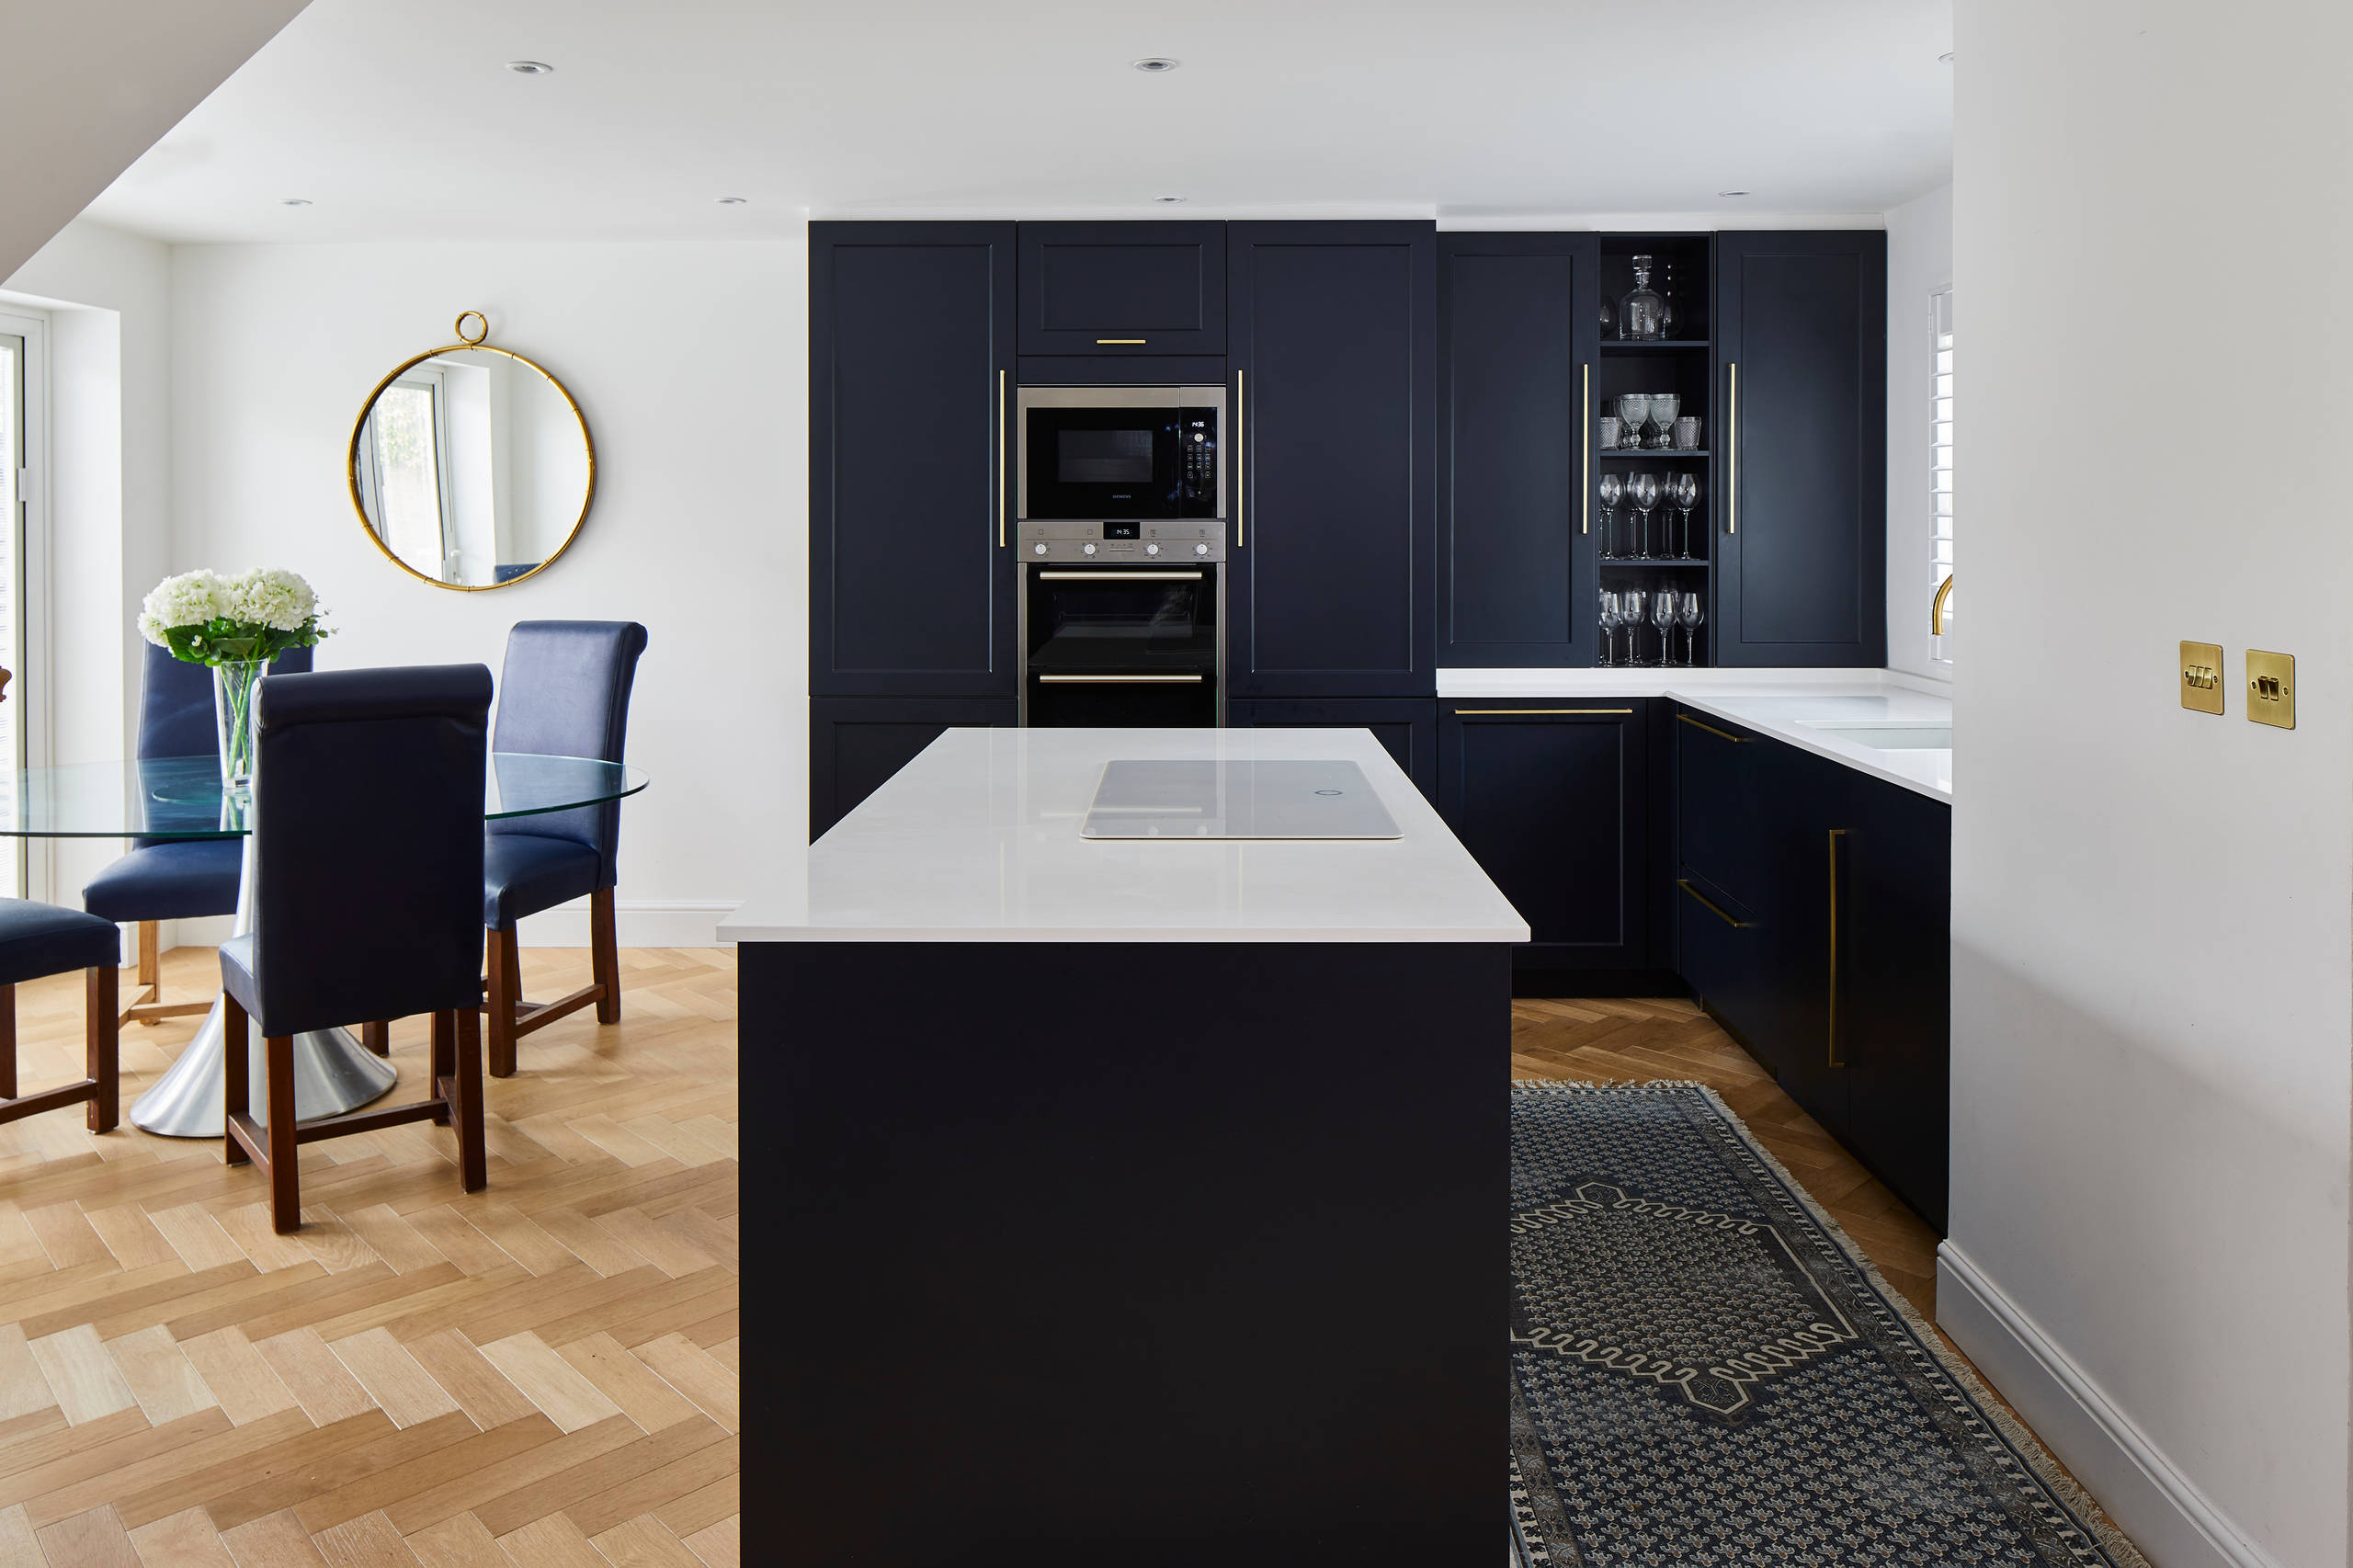 Isle of Dogs conversion